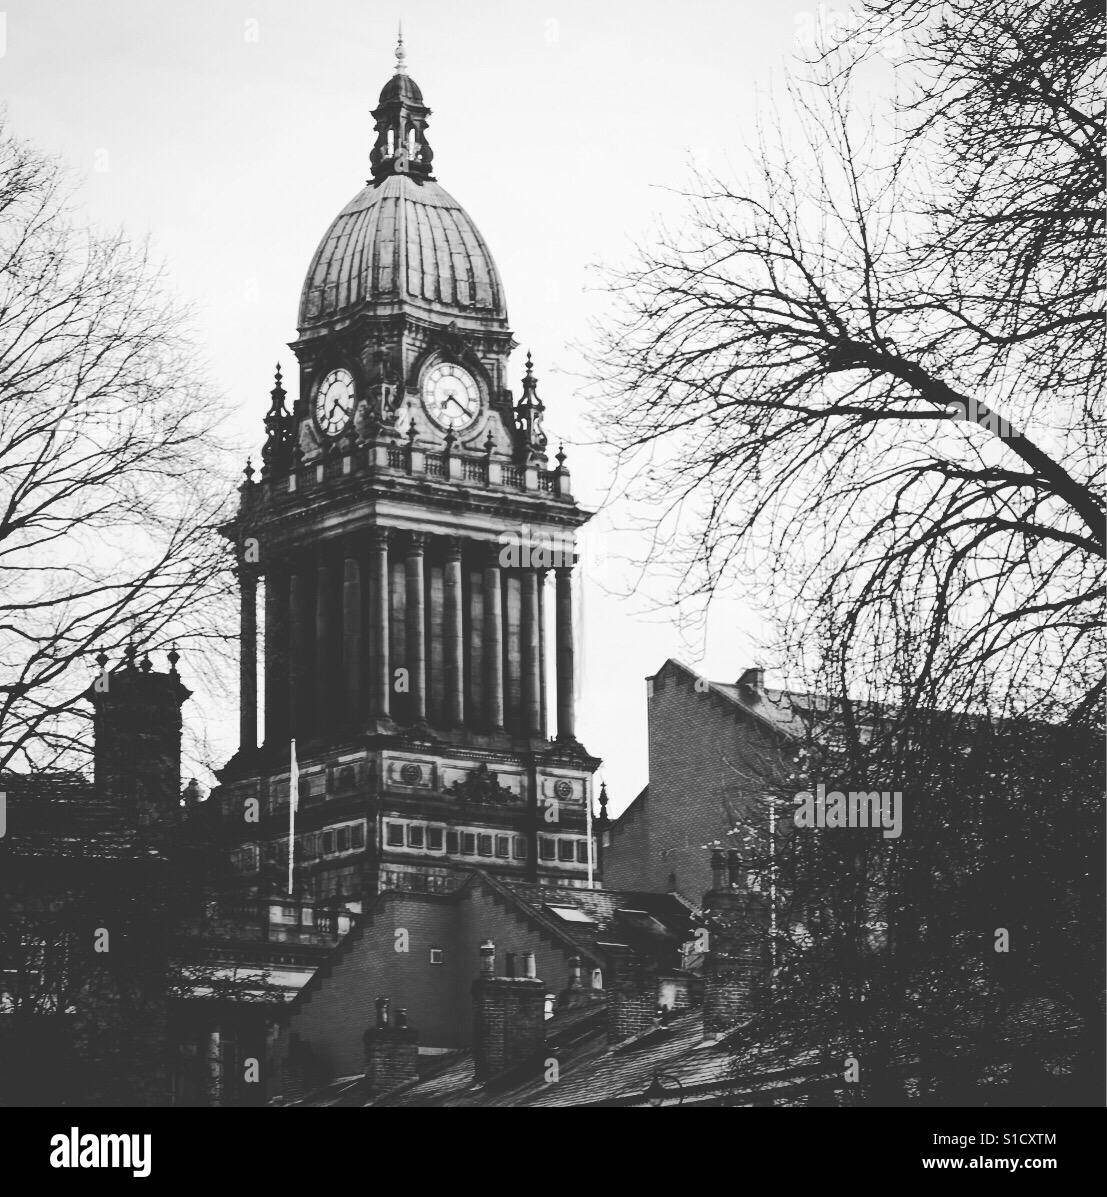 Leeds Town Hall. - Stock Image